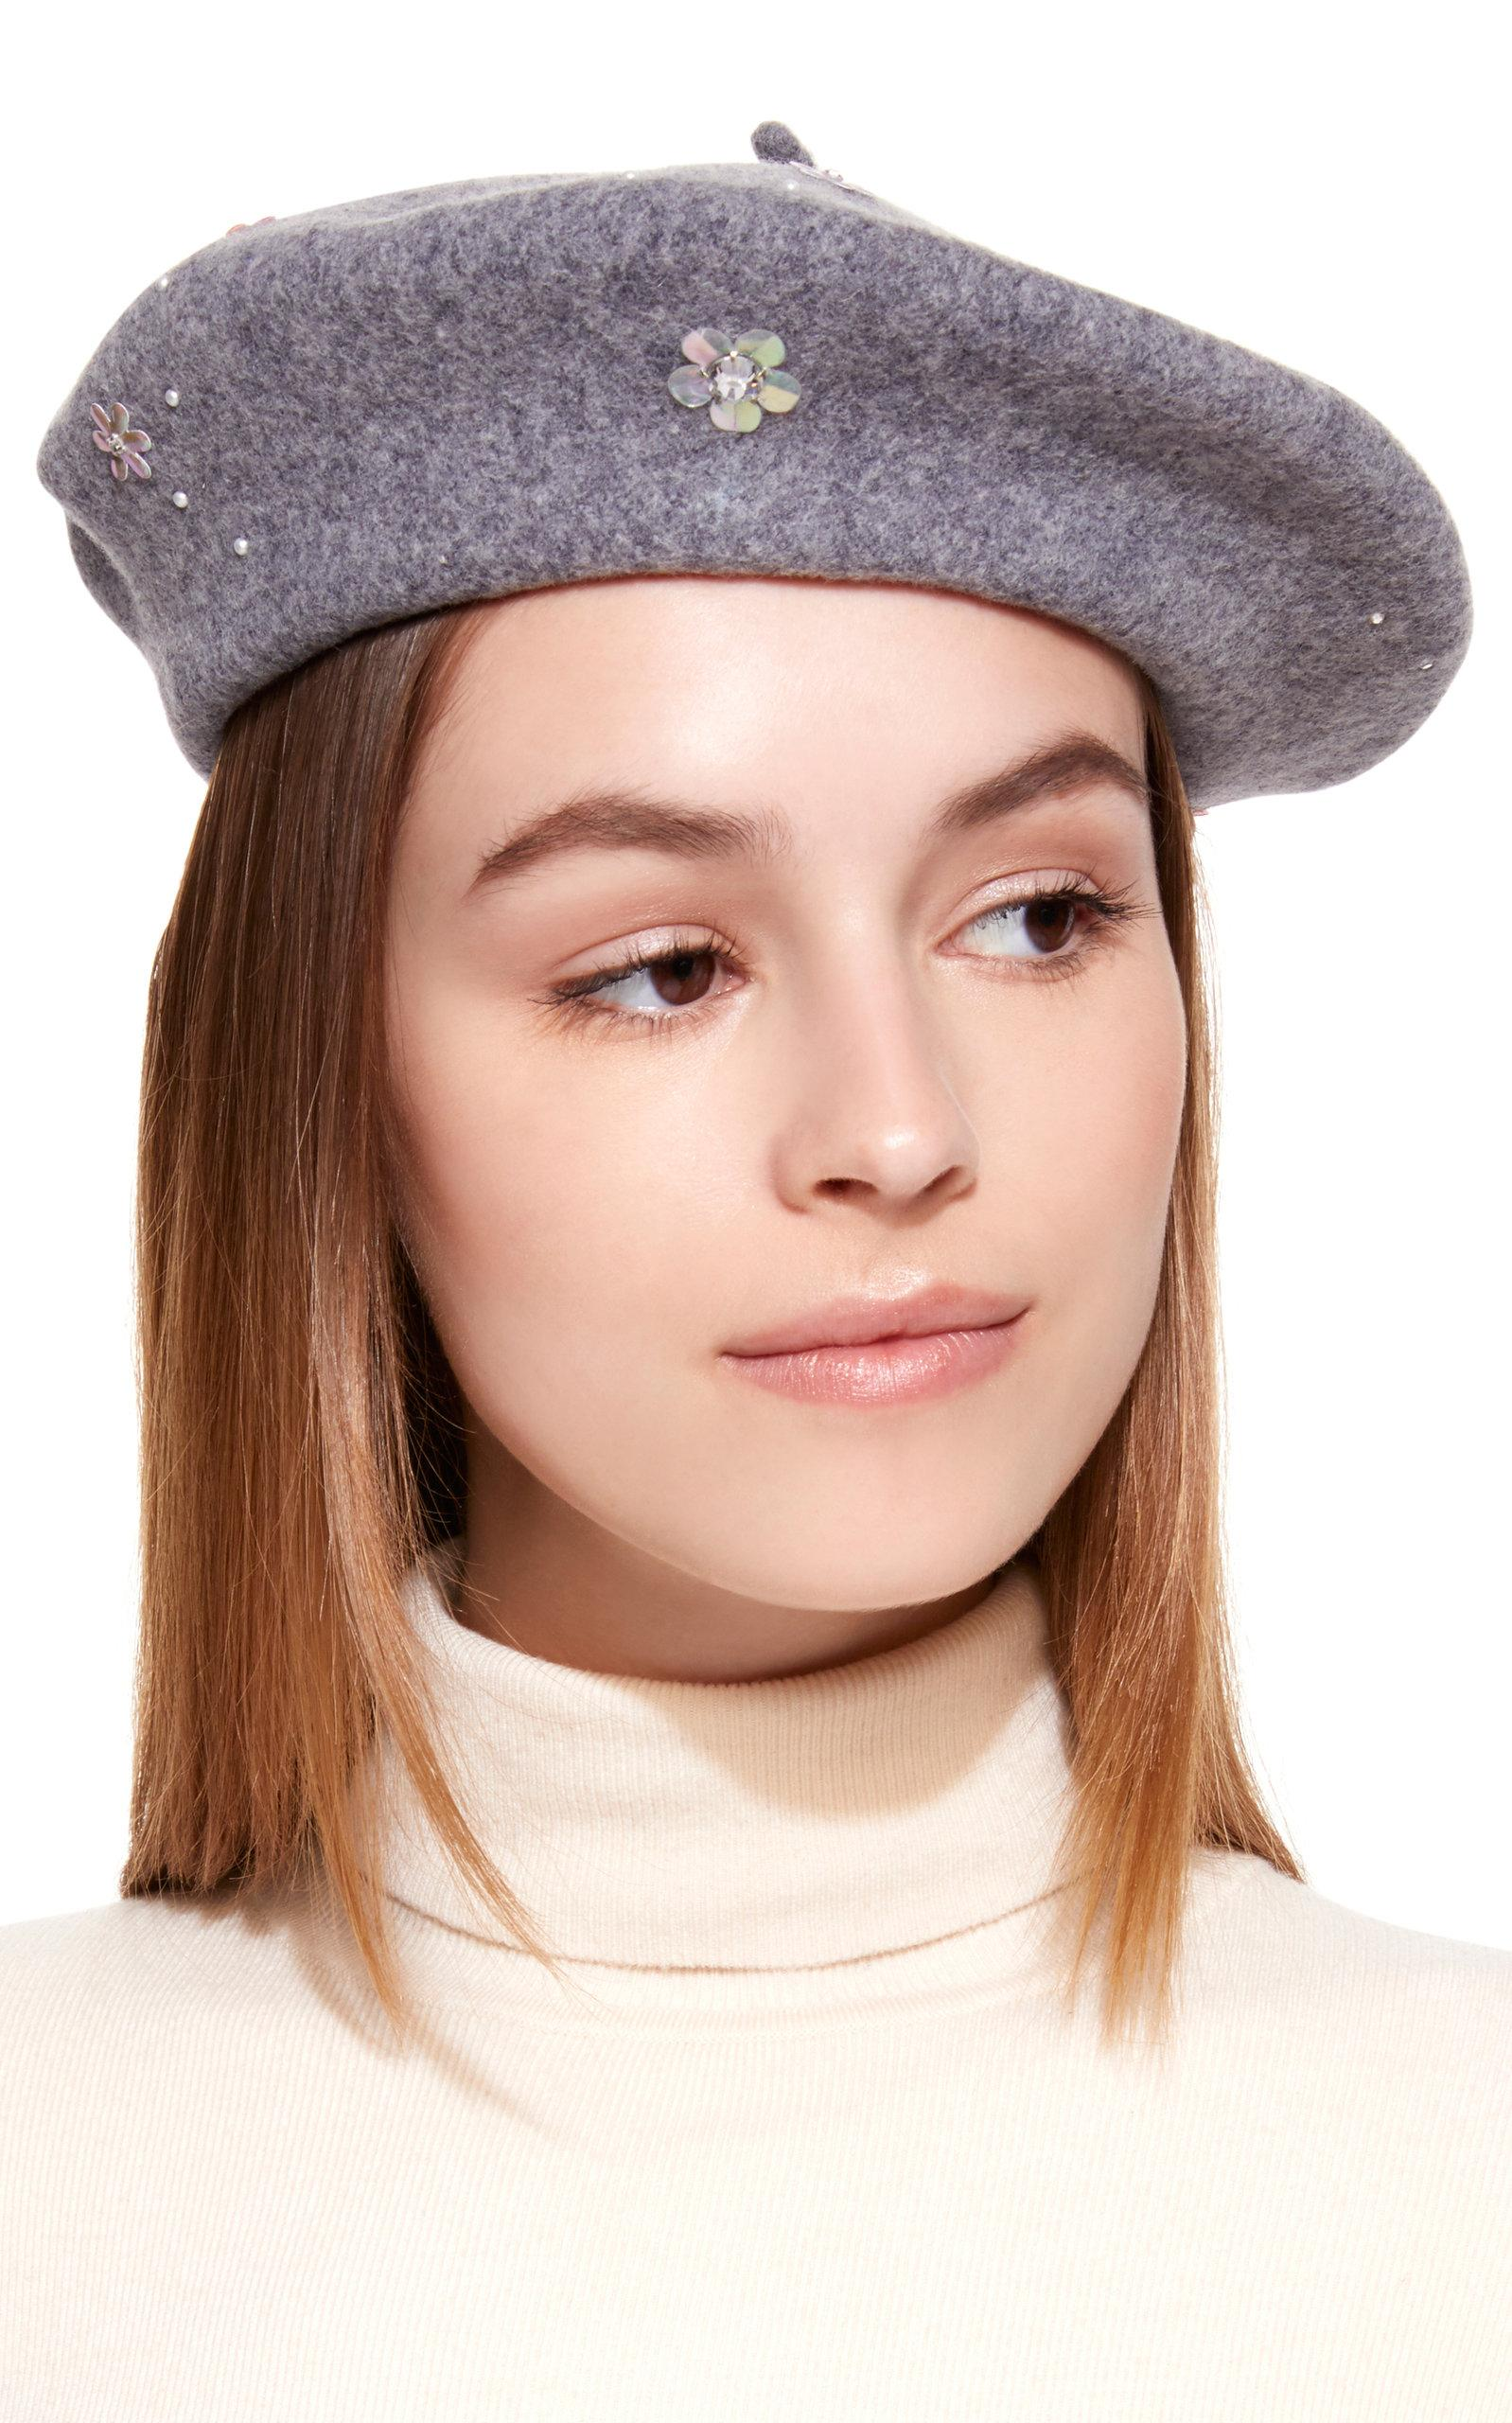 35d8e55e8aba2 Lyst - Yestadt Millinery Sequin Embellished Wool Beret in Gray